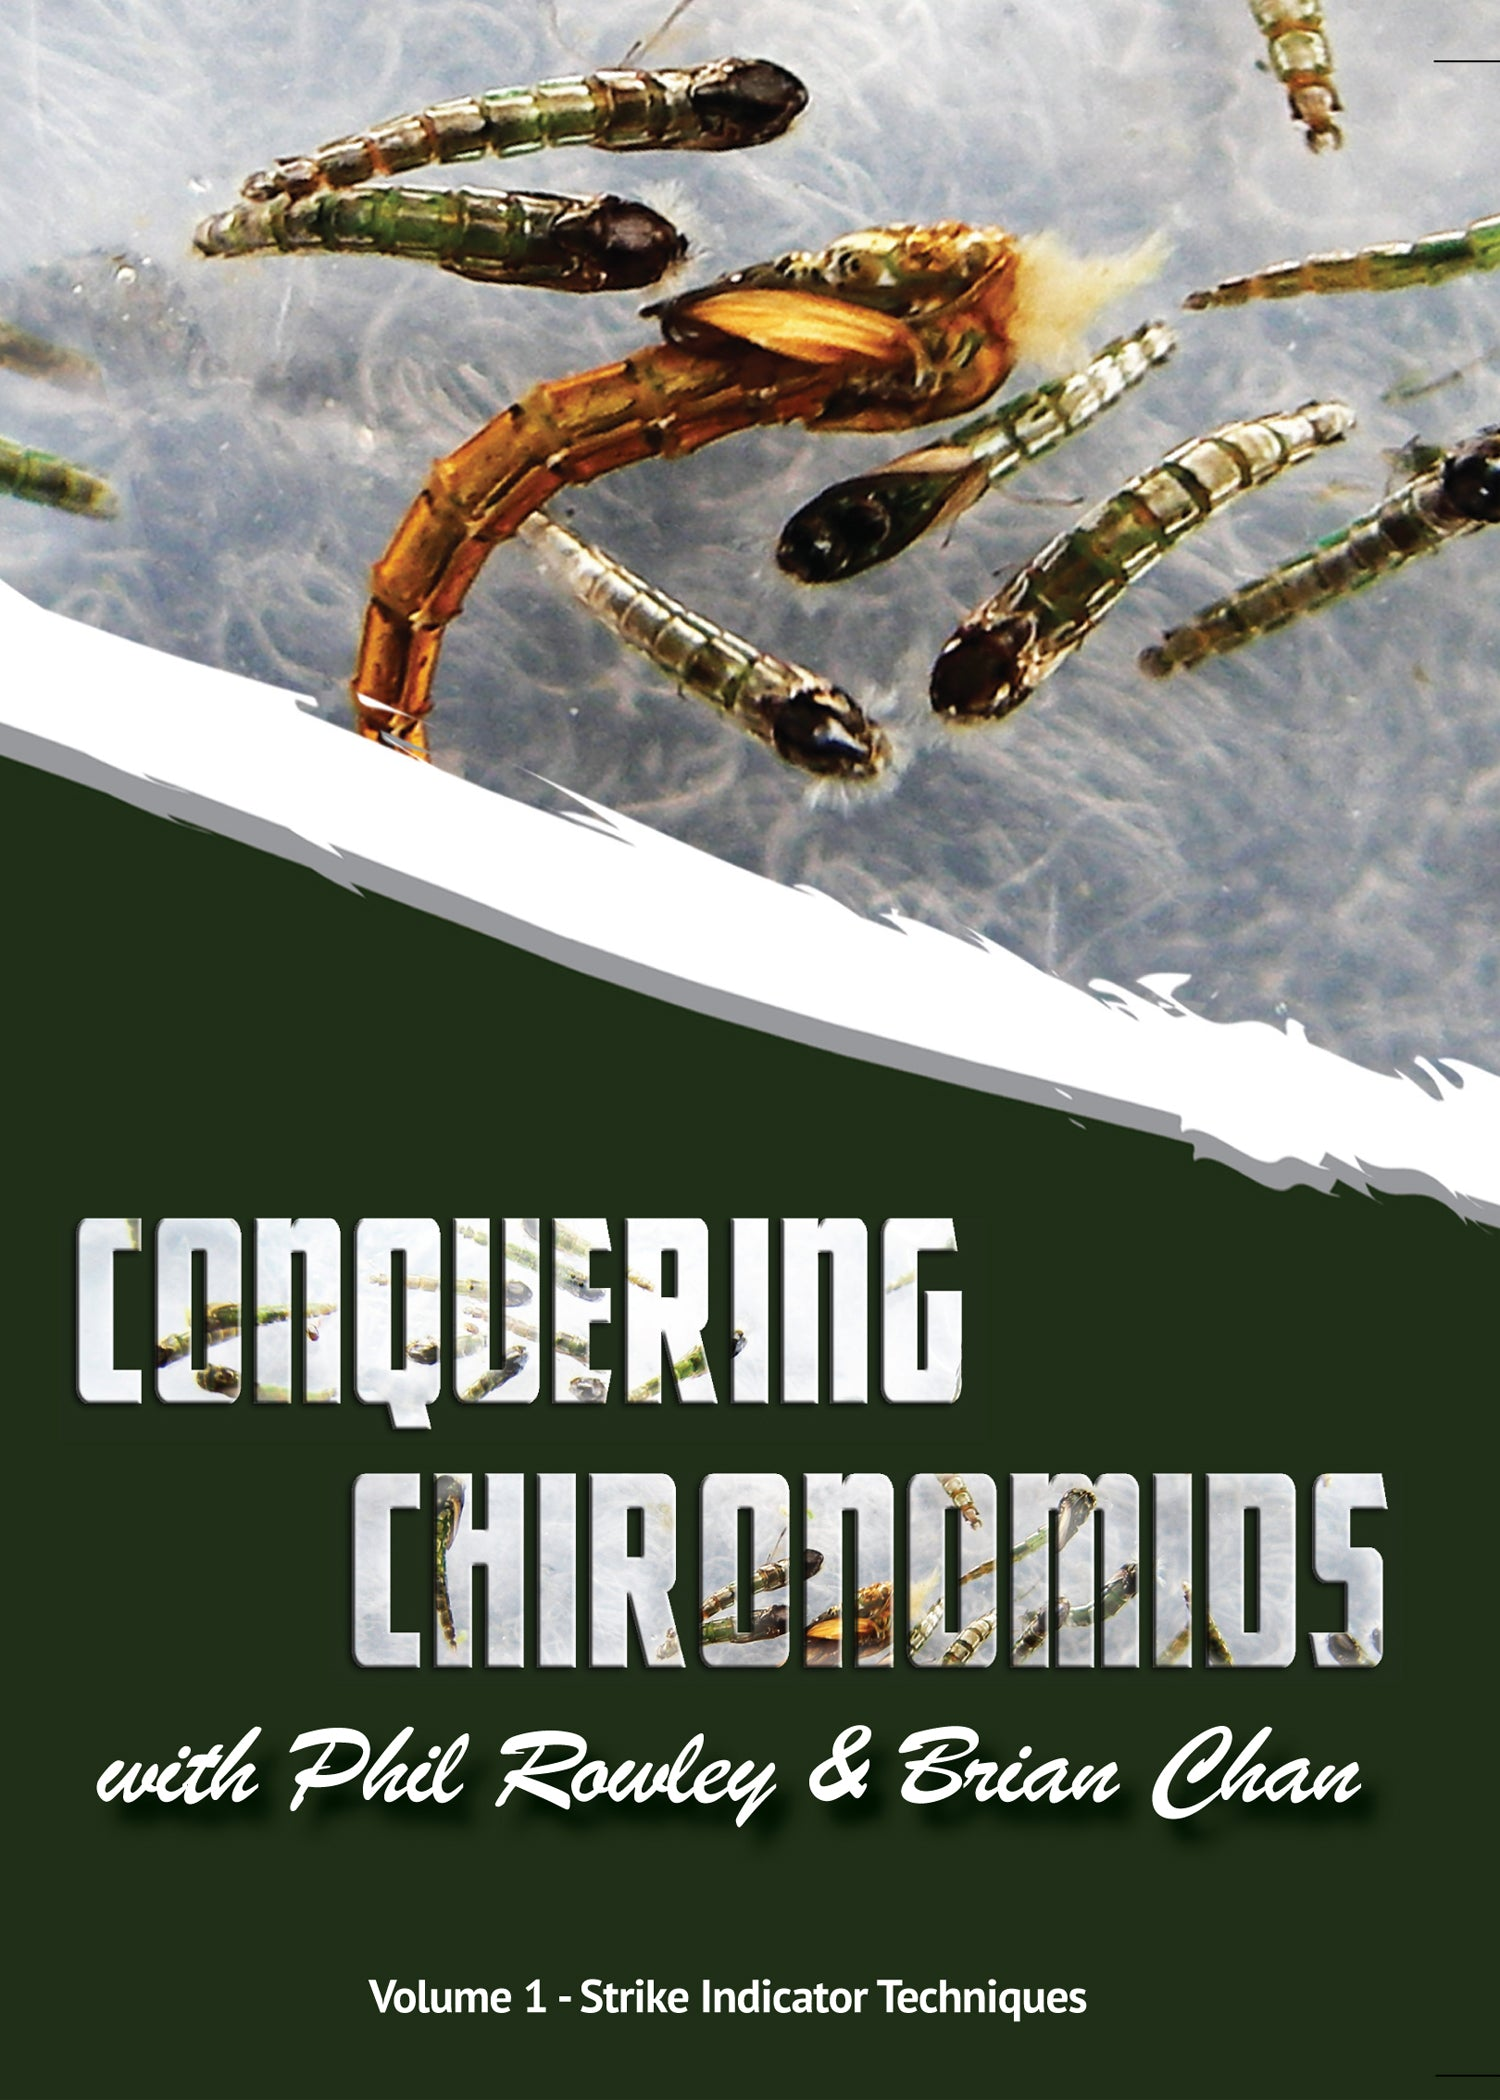 CONQUERING CHIRONOMIDS VOLUME 1-DIGITAL DOWNLOAD